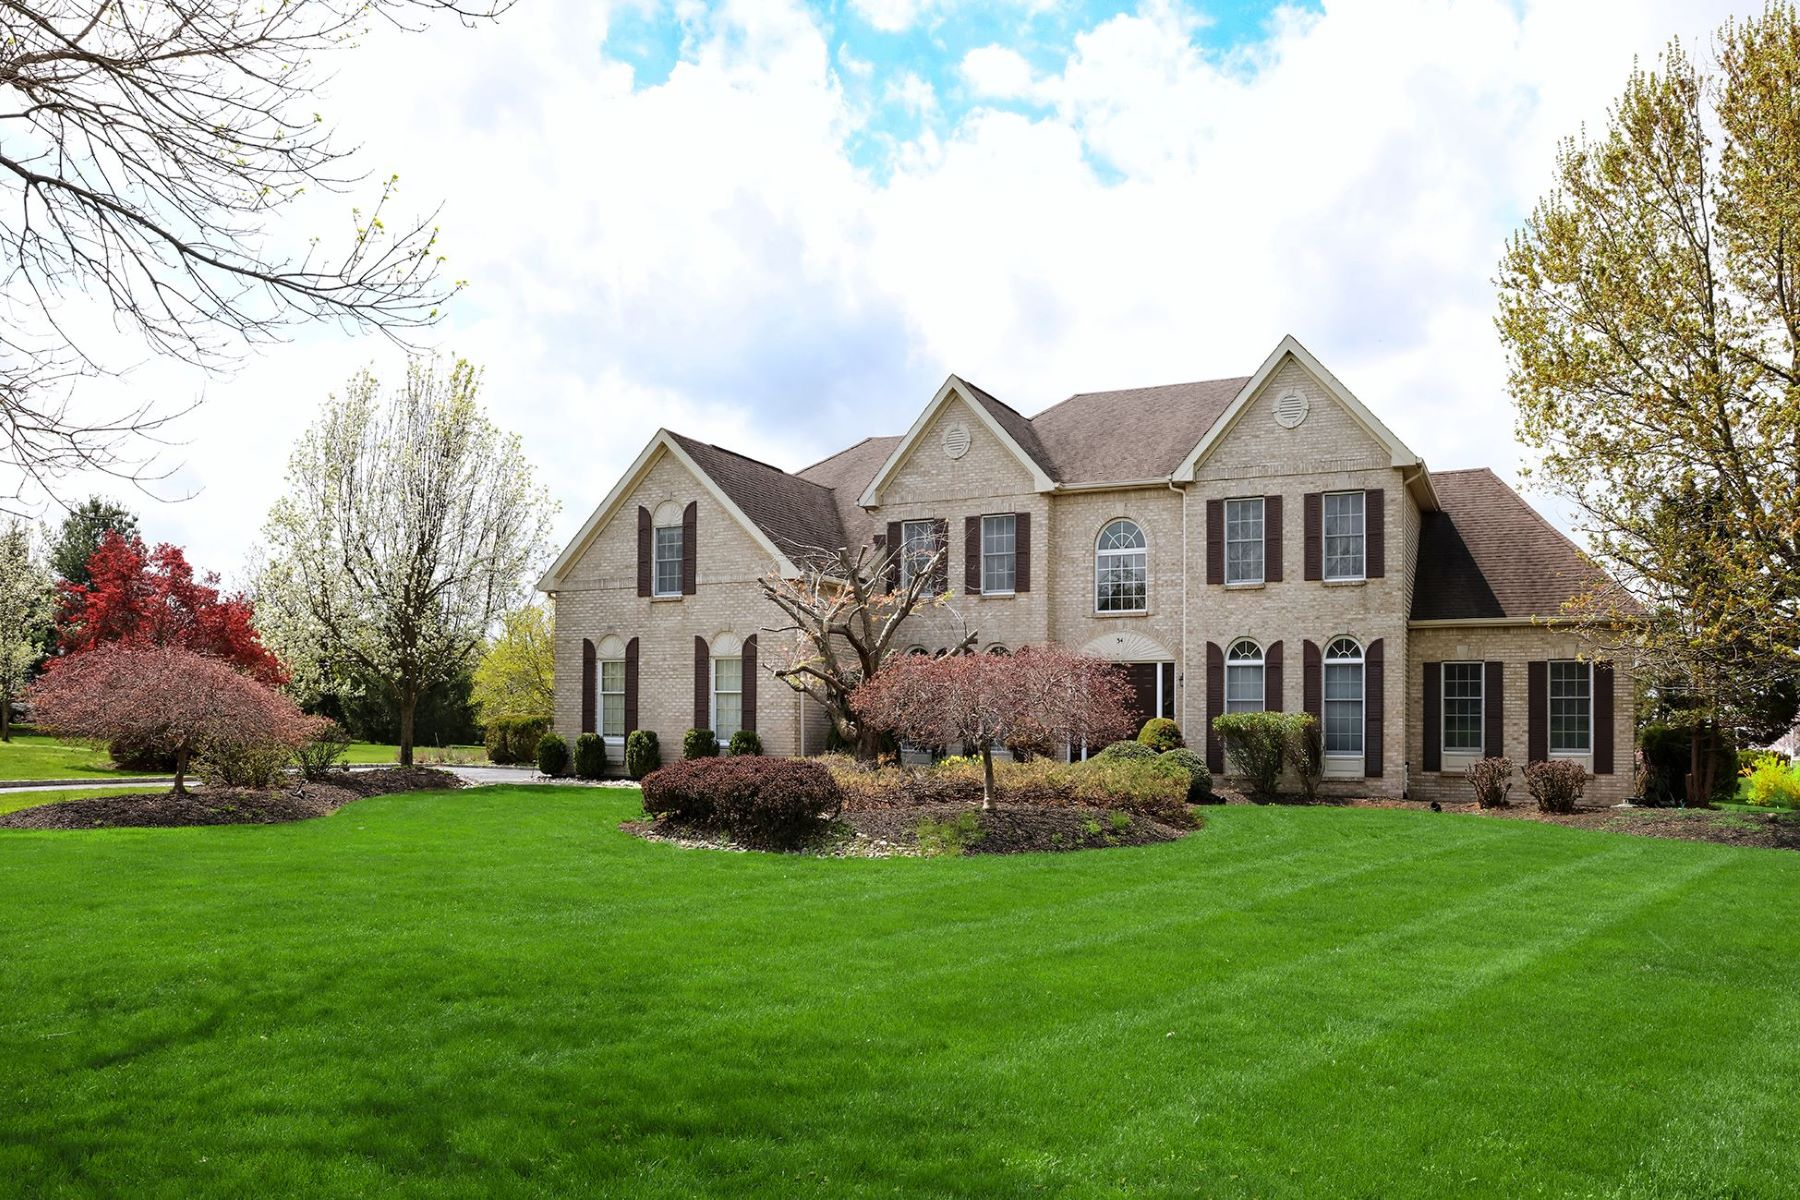 Property for Sale at Superb, Sundrenched Home With Many Updates 34 Vanderveer Drive, Belle Mead, New Jersey 08502 United States